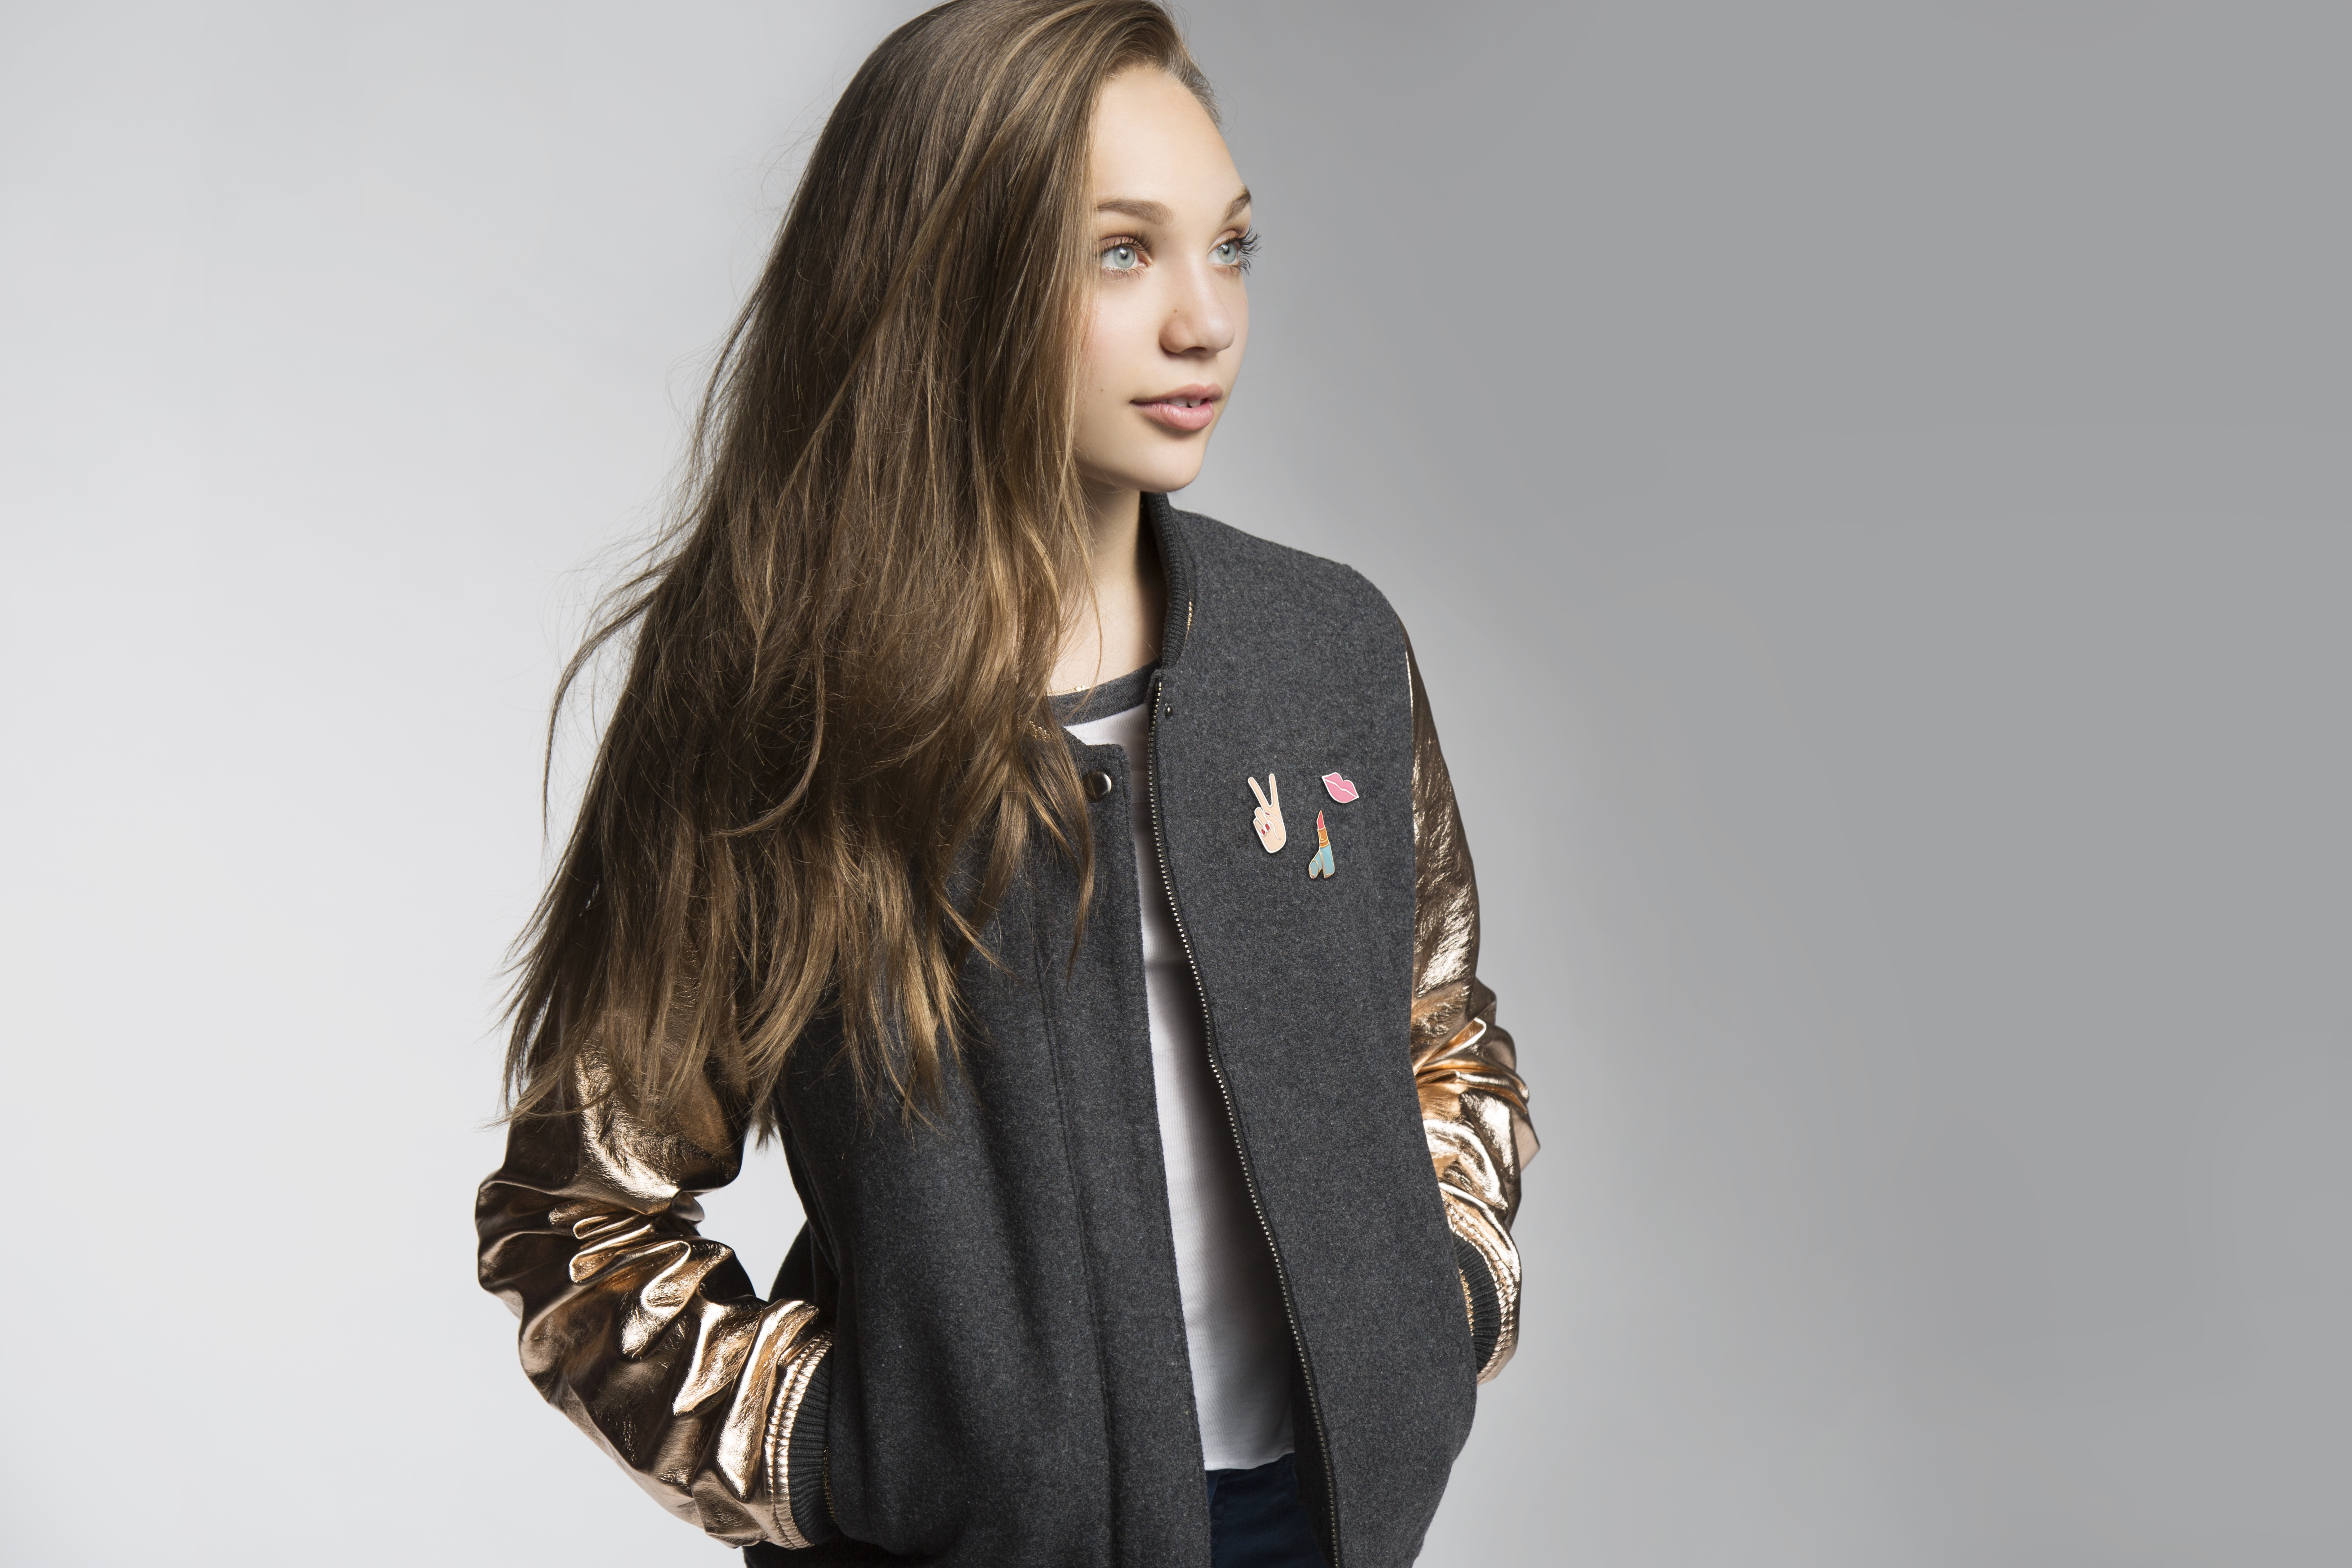 Maddie Ziegler Is Launching A Clothing Line The Fashion Foot